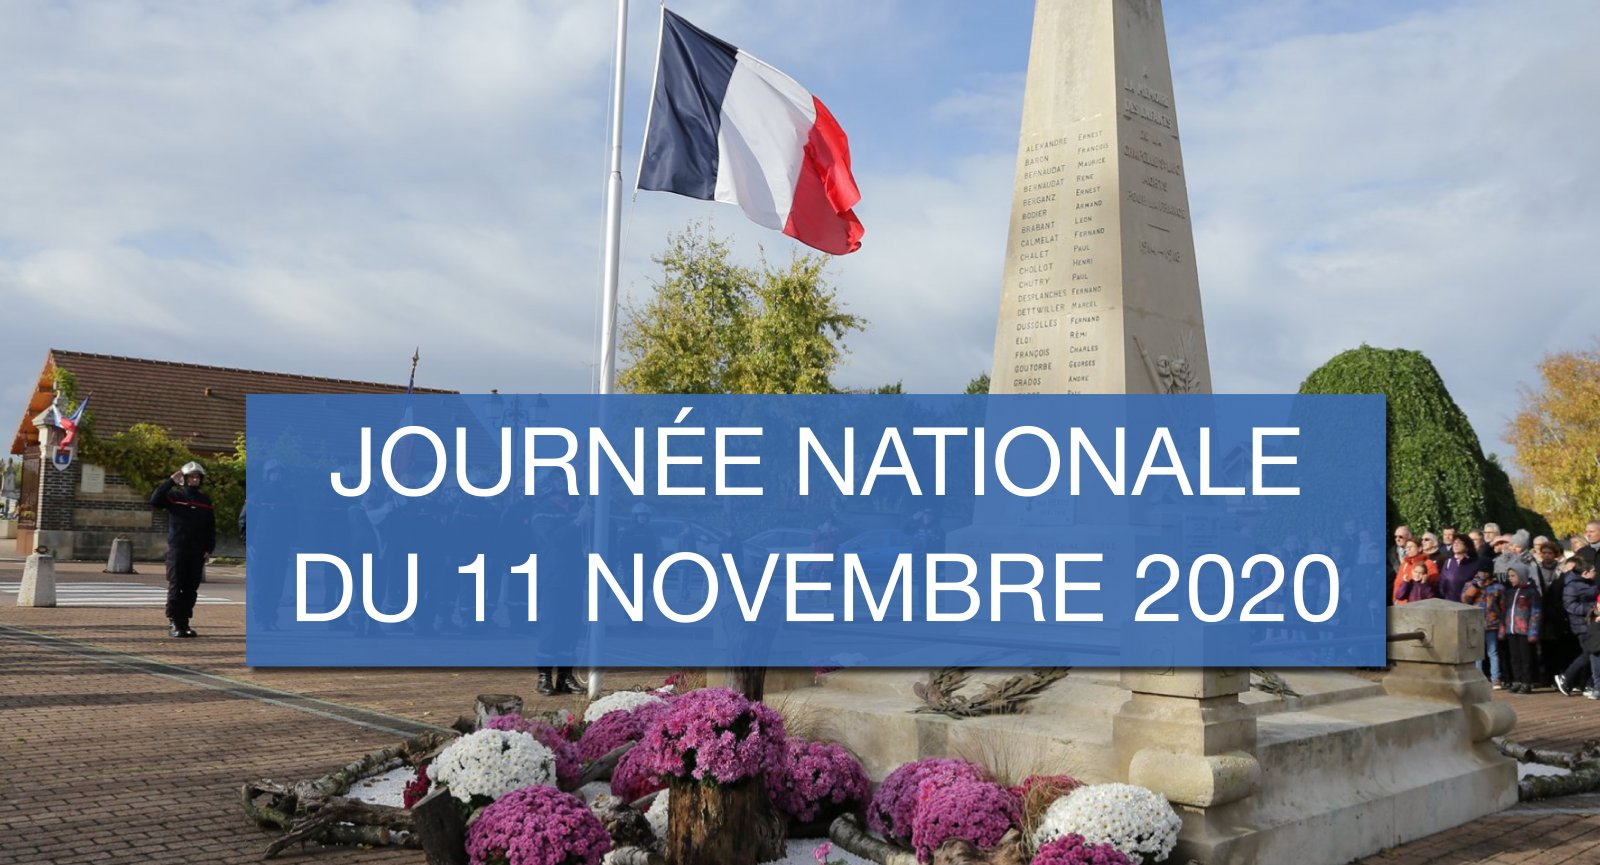 Journée nationale du 11 novembre 2020